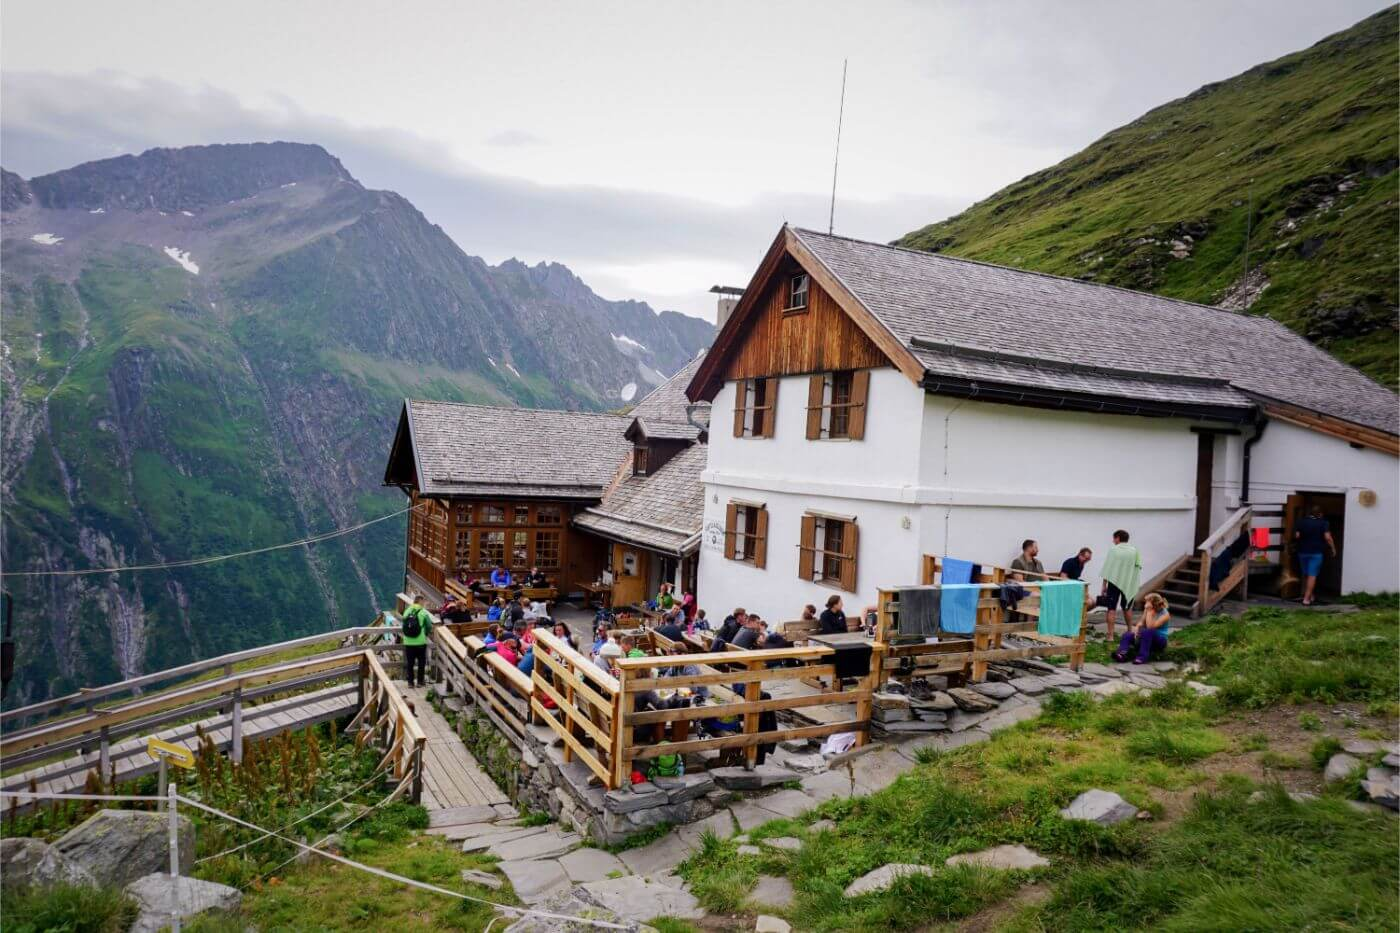 Furtschaglhaus, Berliner High Trail mountain hut, Zillertal, Austria